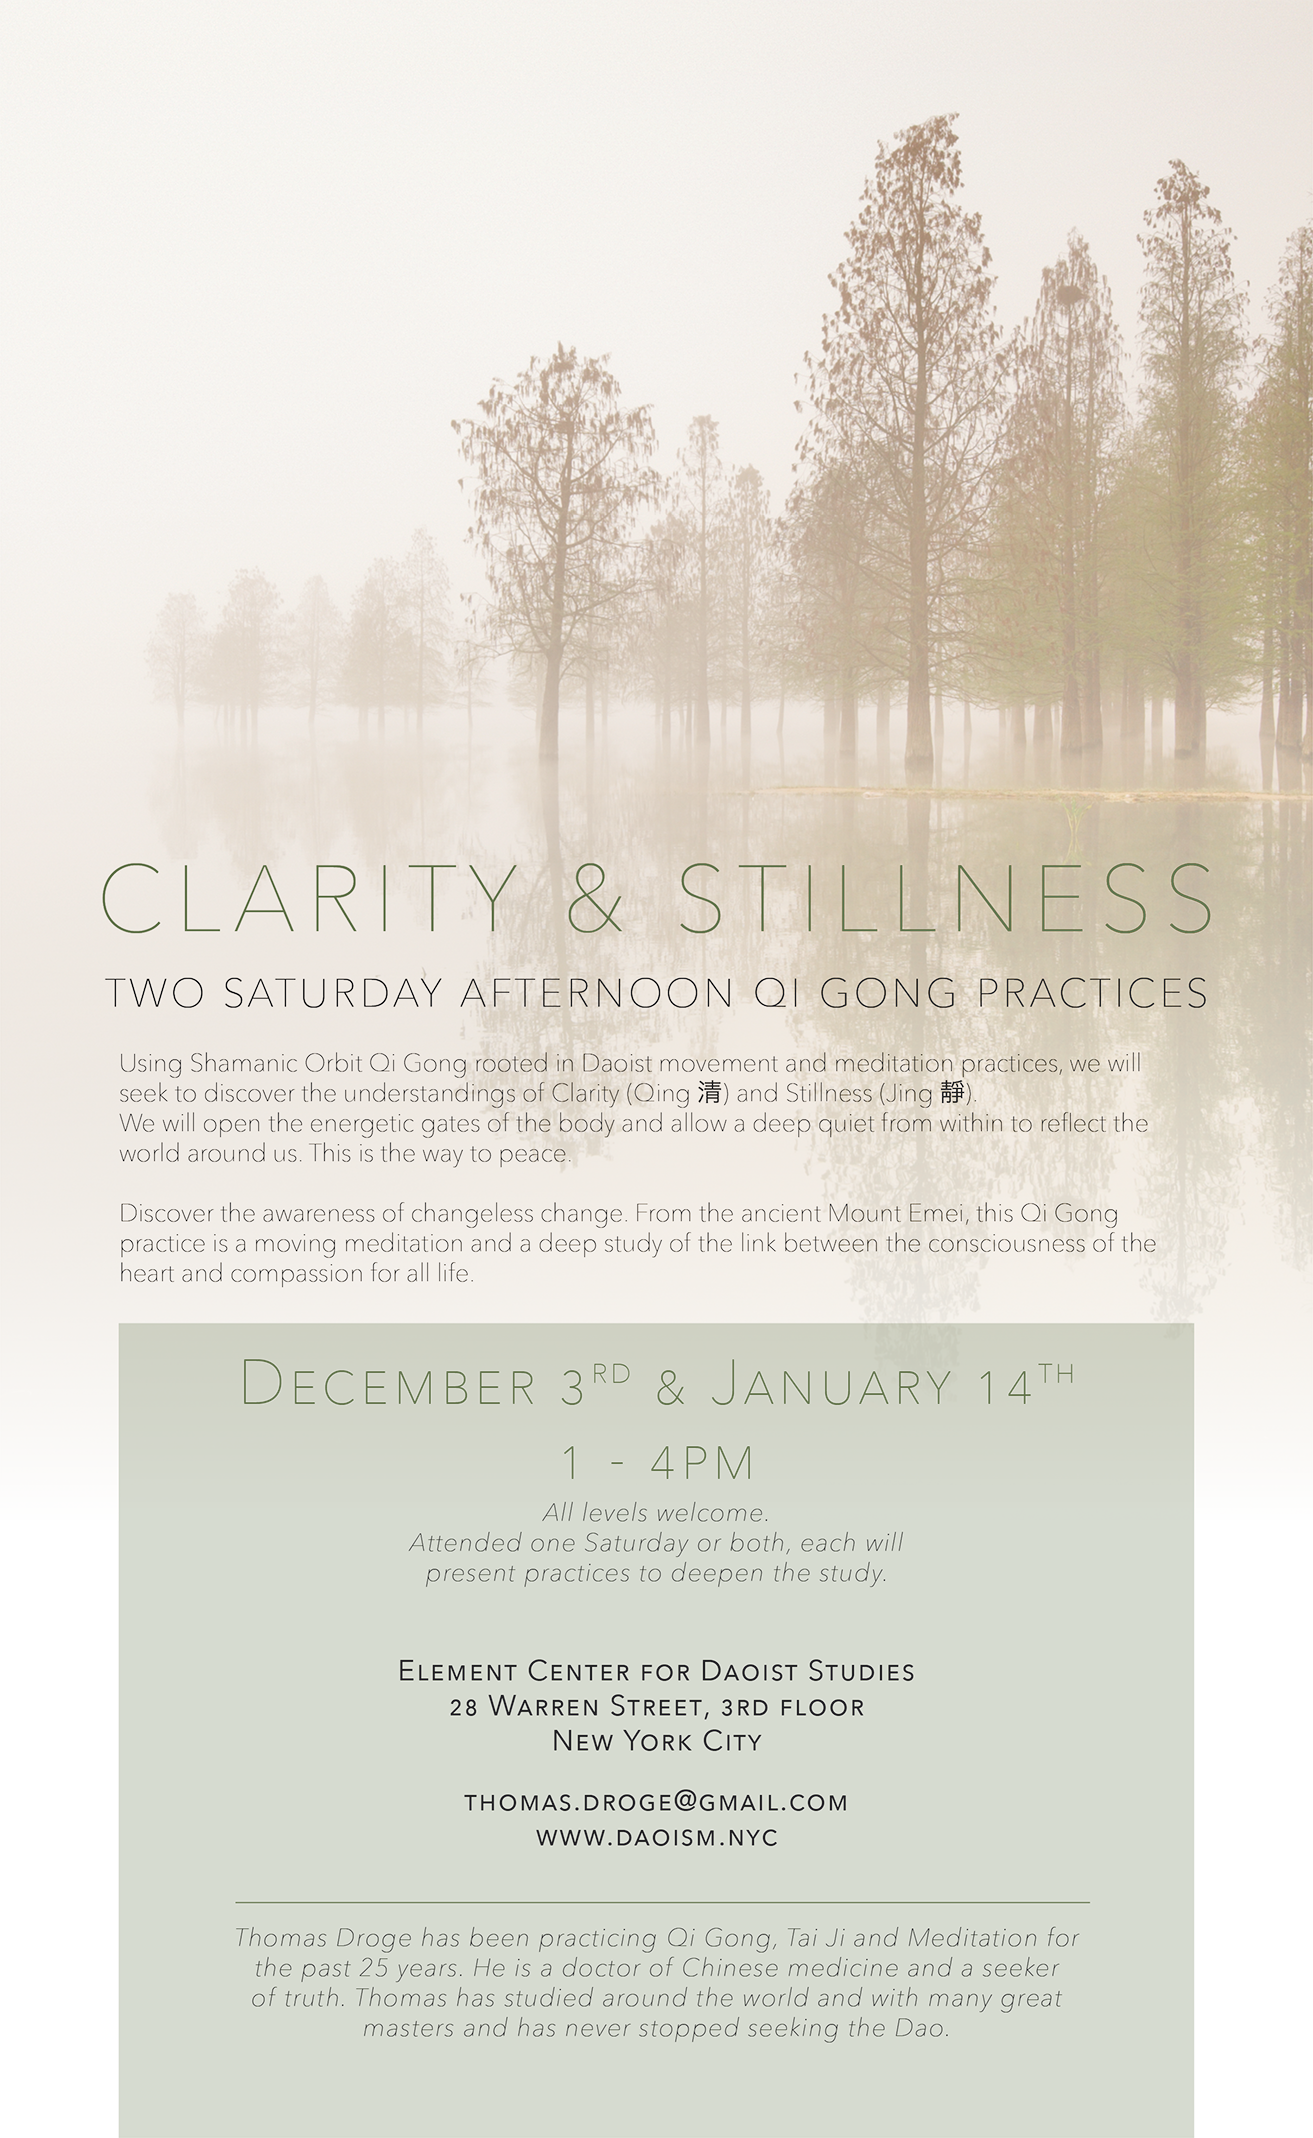 Clarity and Stillness || - Jan 14  — PATHFINDER INSTITUTE